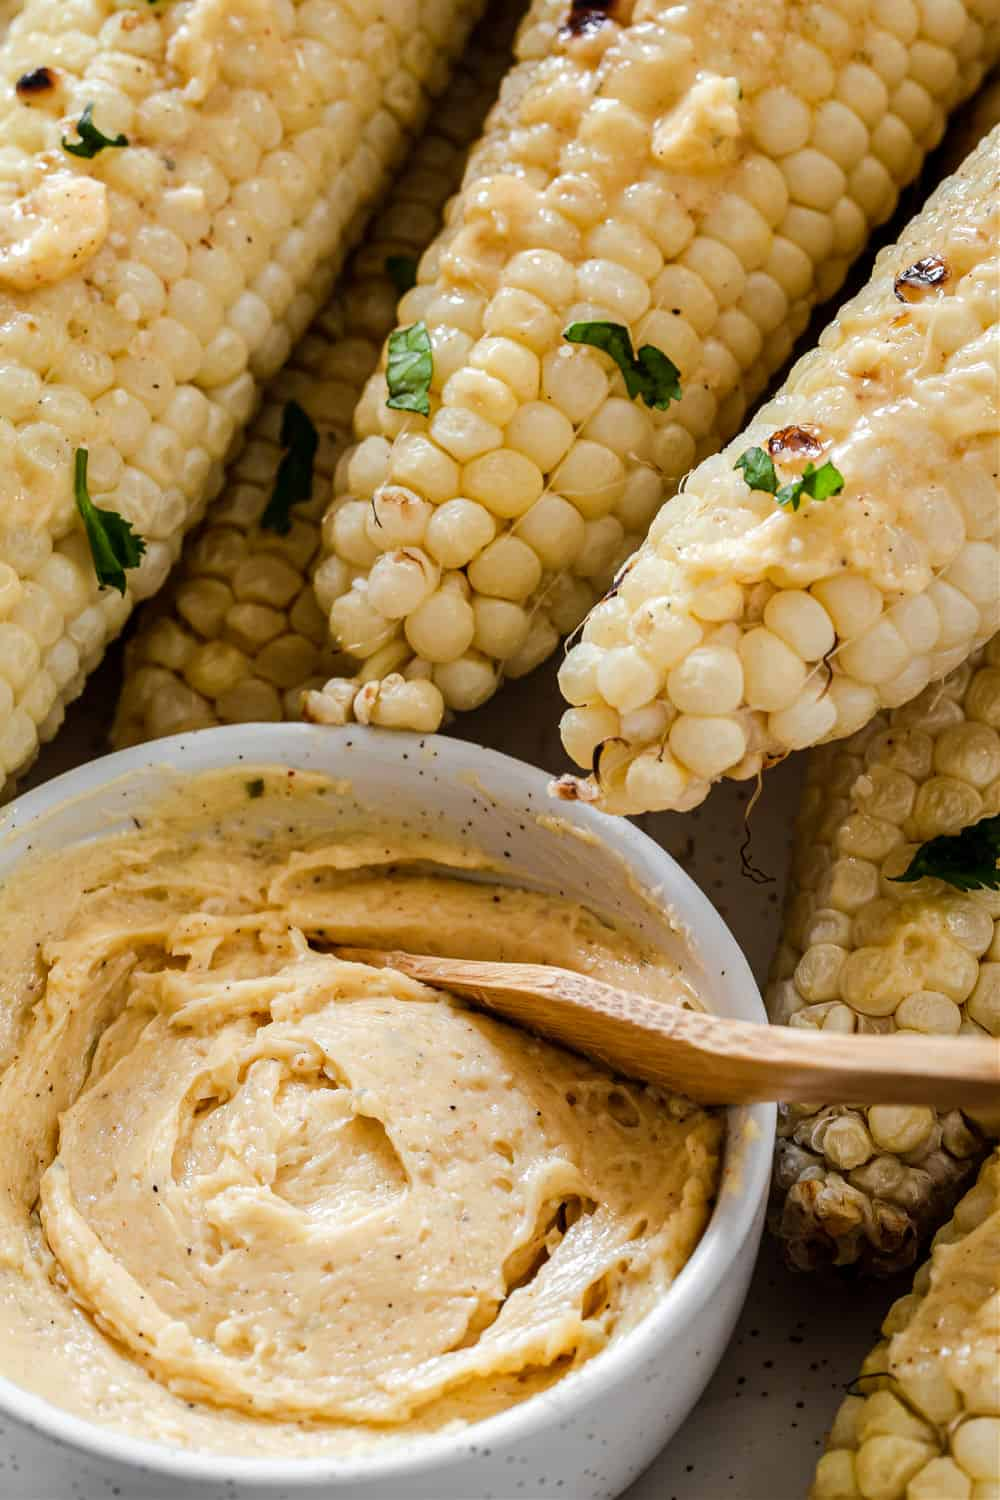 parmesan butter in small bowl with corn